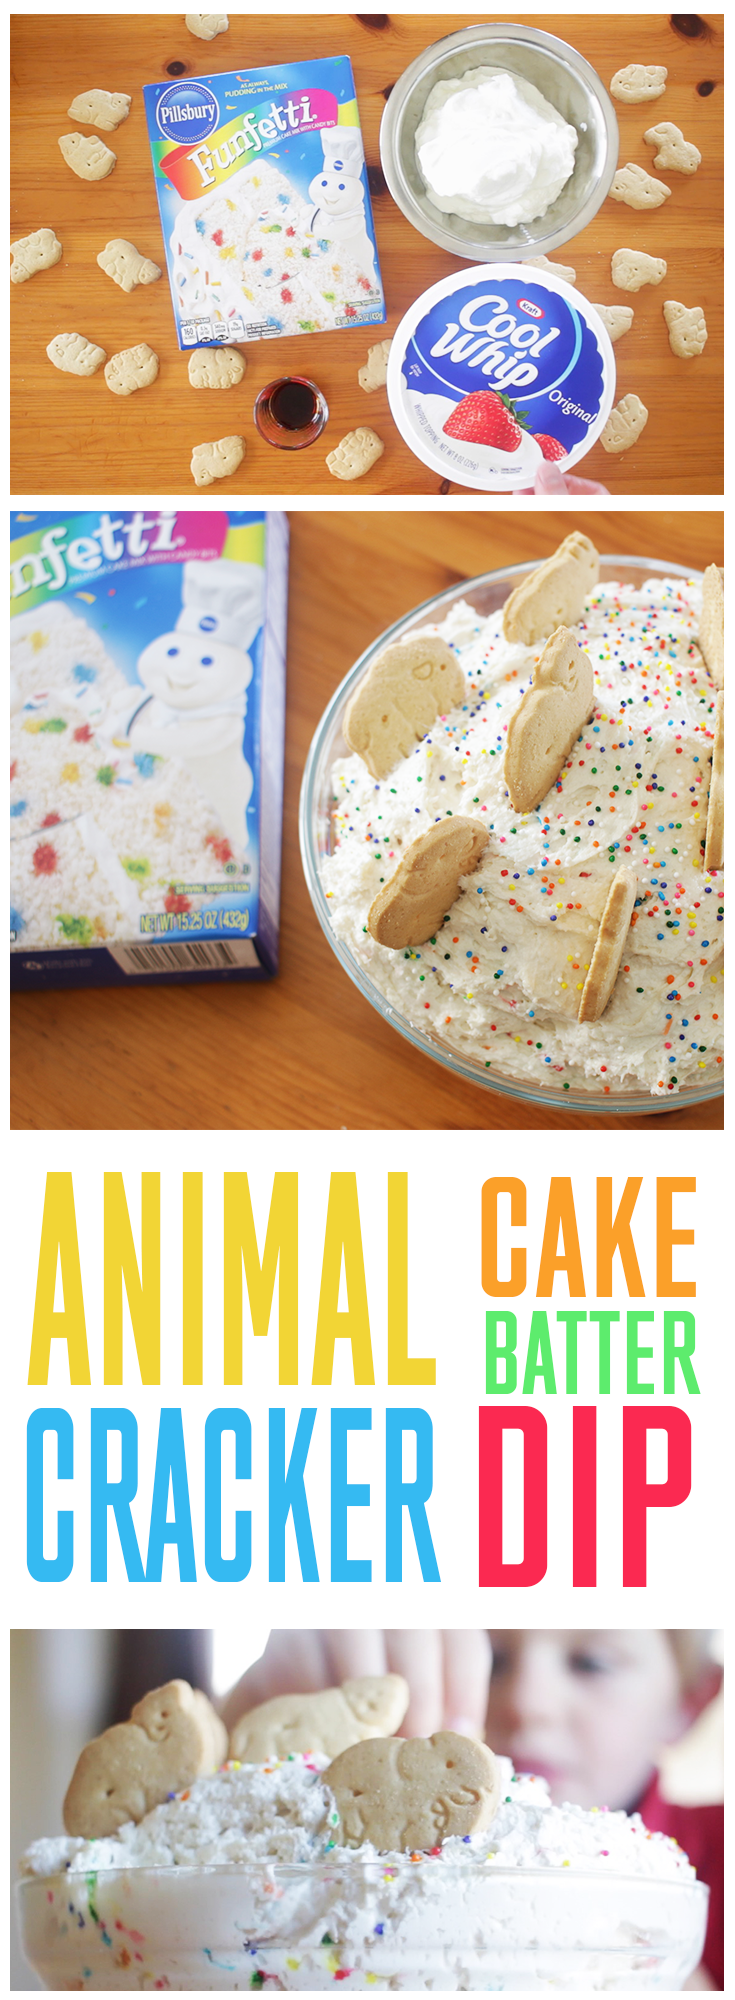 animal-cracker-cake-batter-dip-PINTEREST